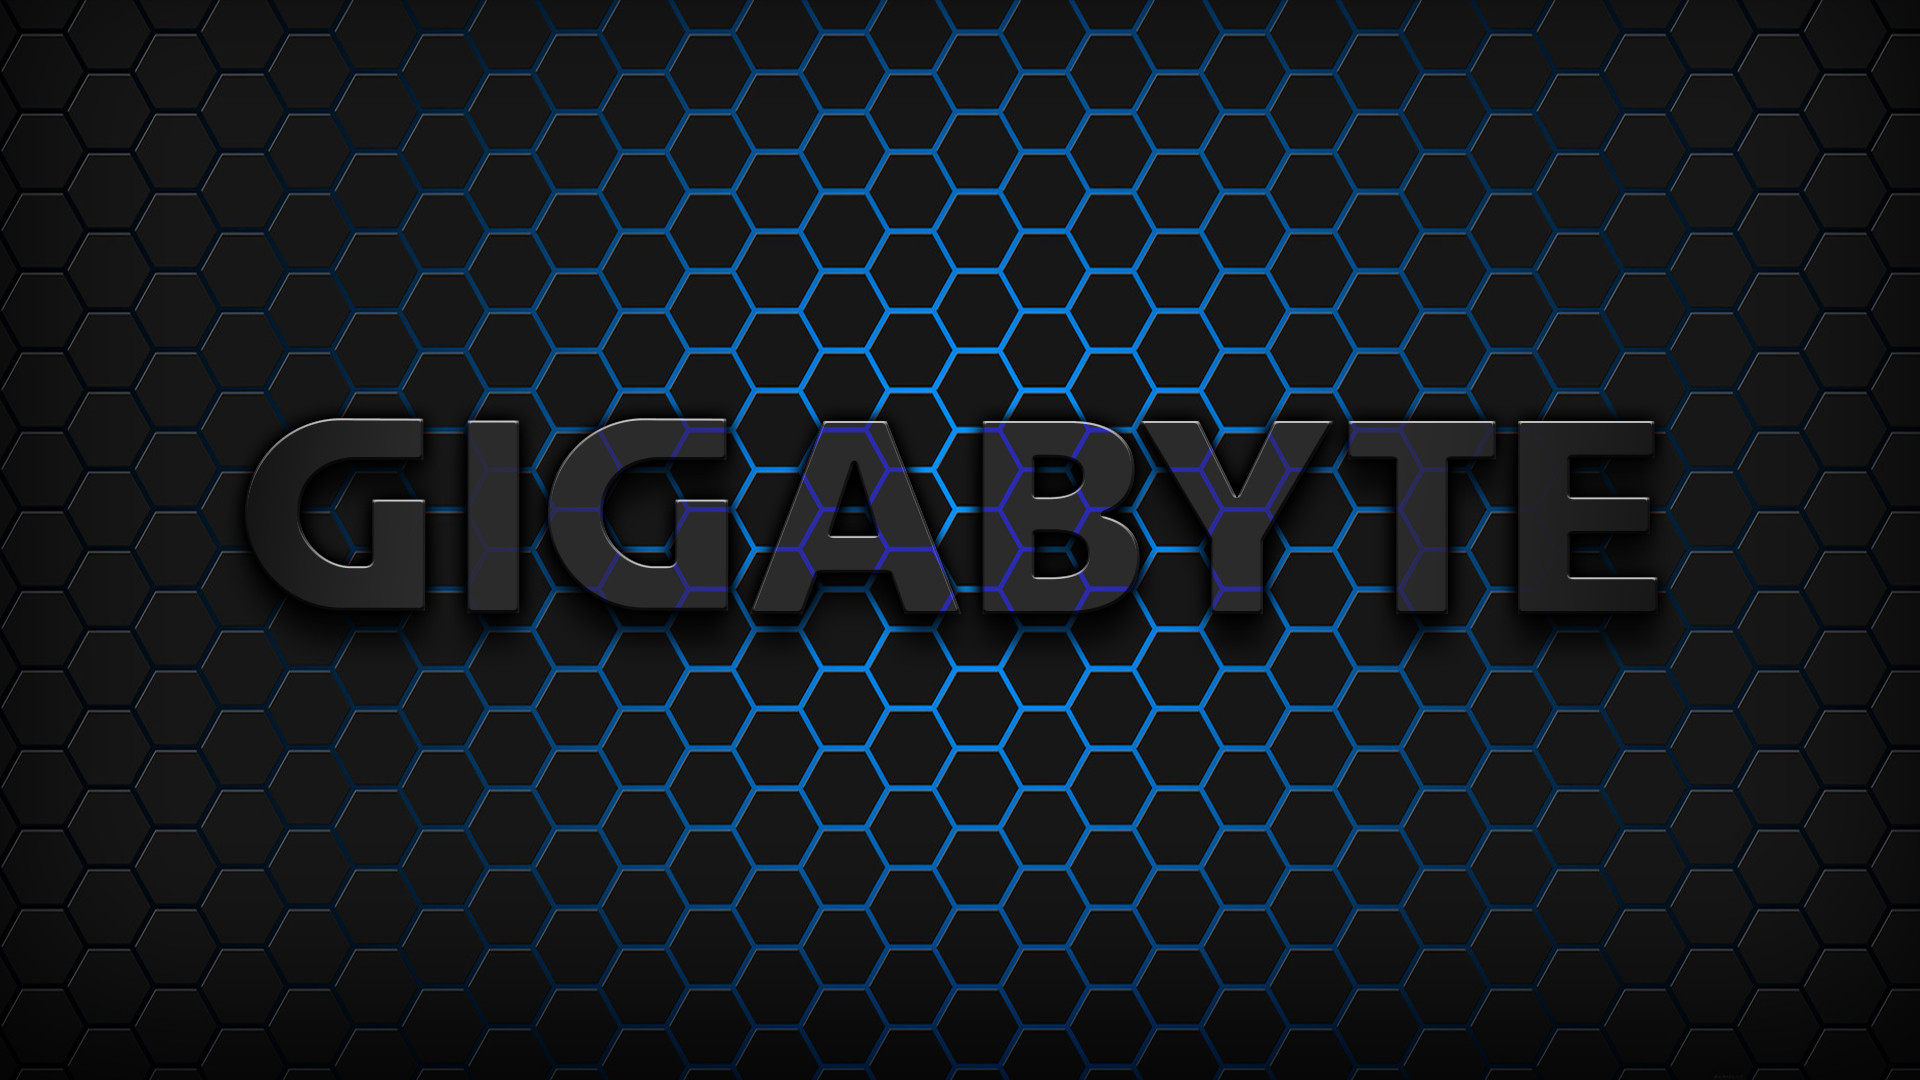 Res: 1920x1080, Gigabyte Wallpapers